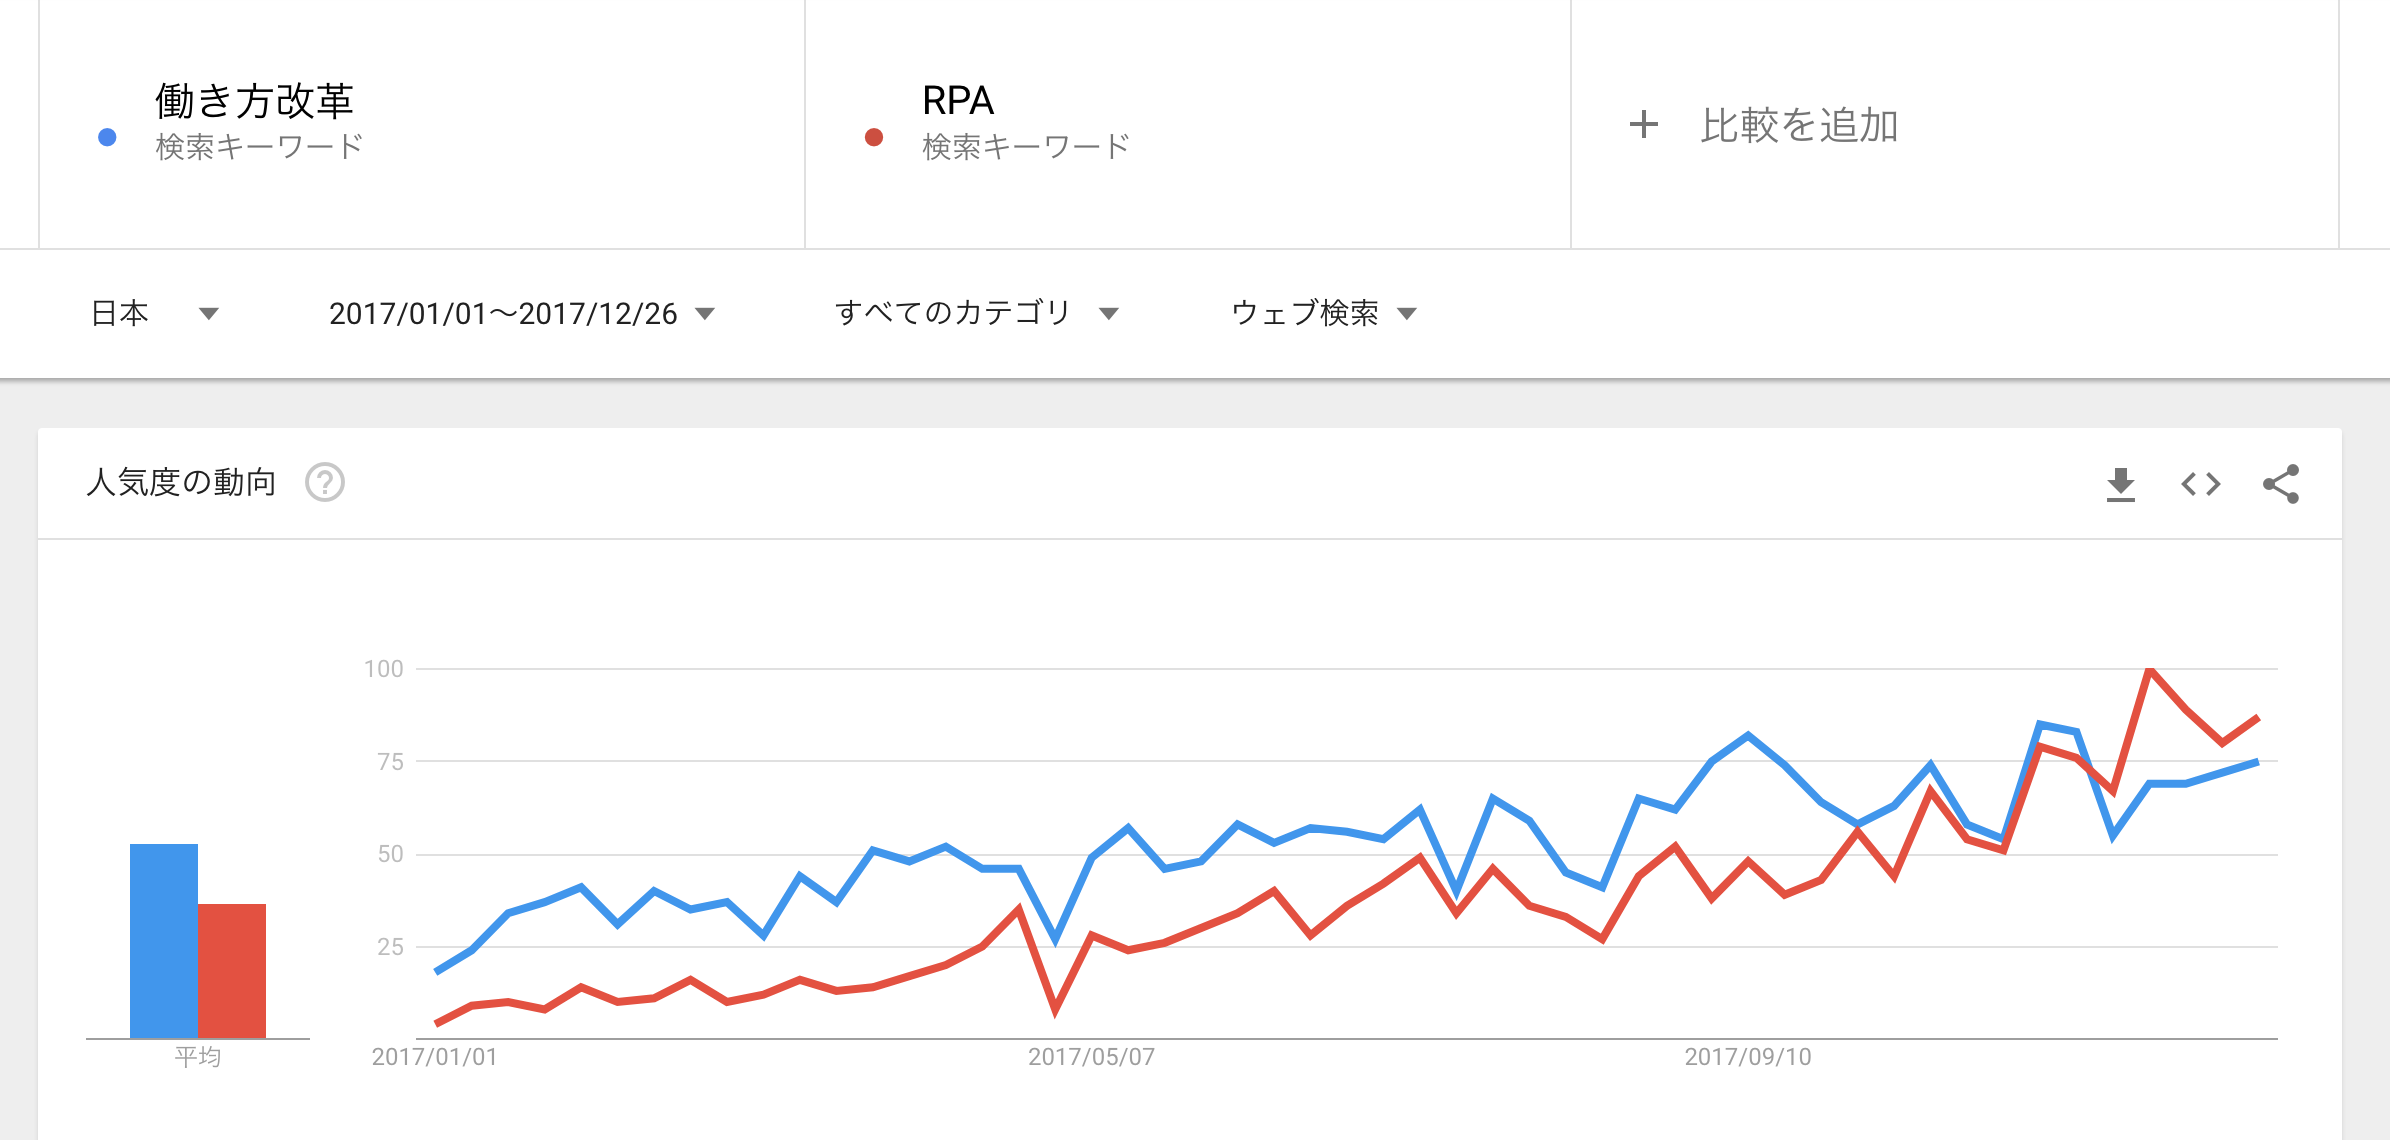 """Trends in Google searches for """"Workplace Reform"""" and robotic process automation (RPA) from January to December, 26, 2017. The number of searches increased several fold over the course of the year."""